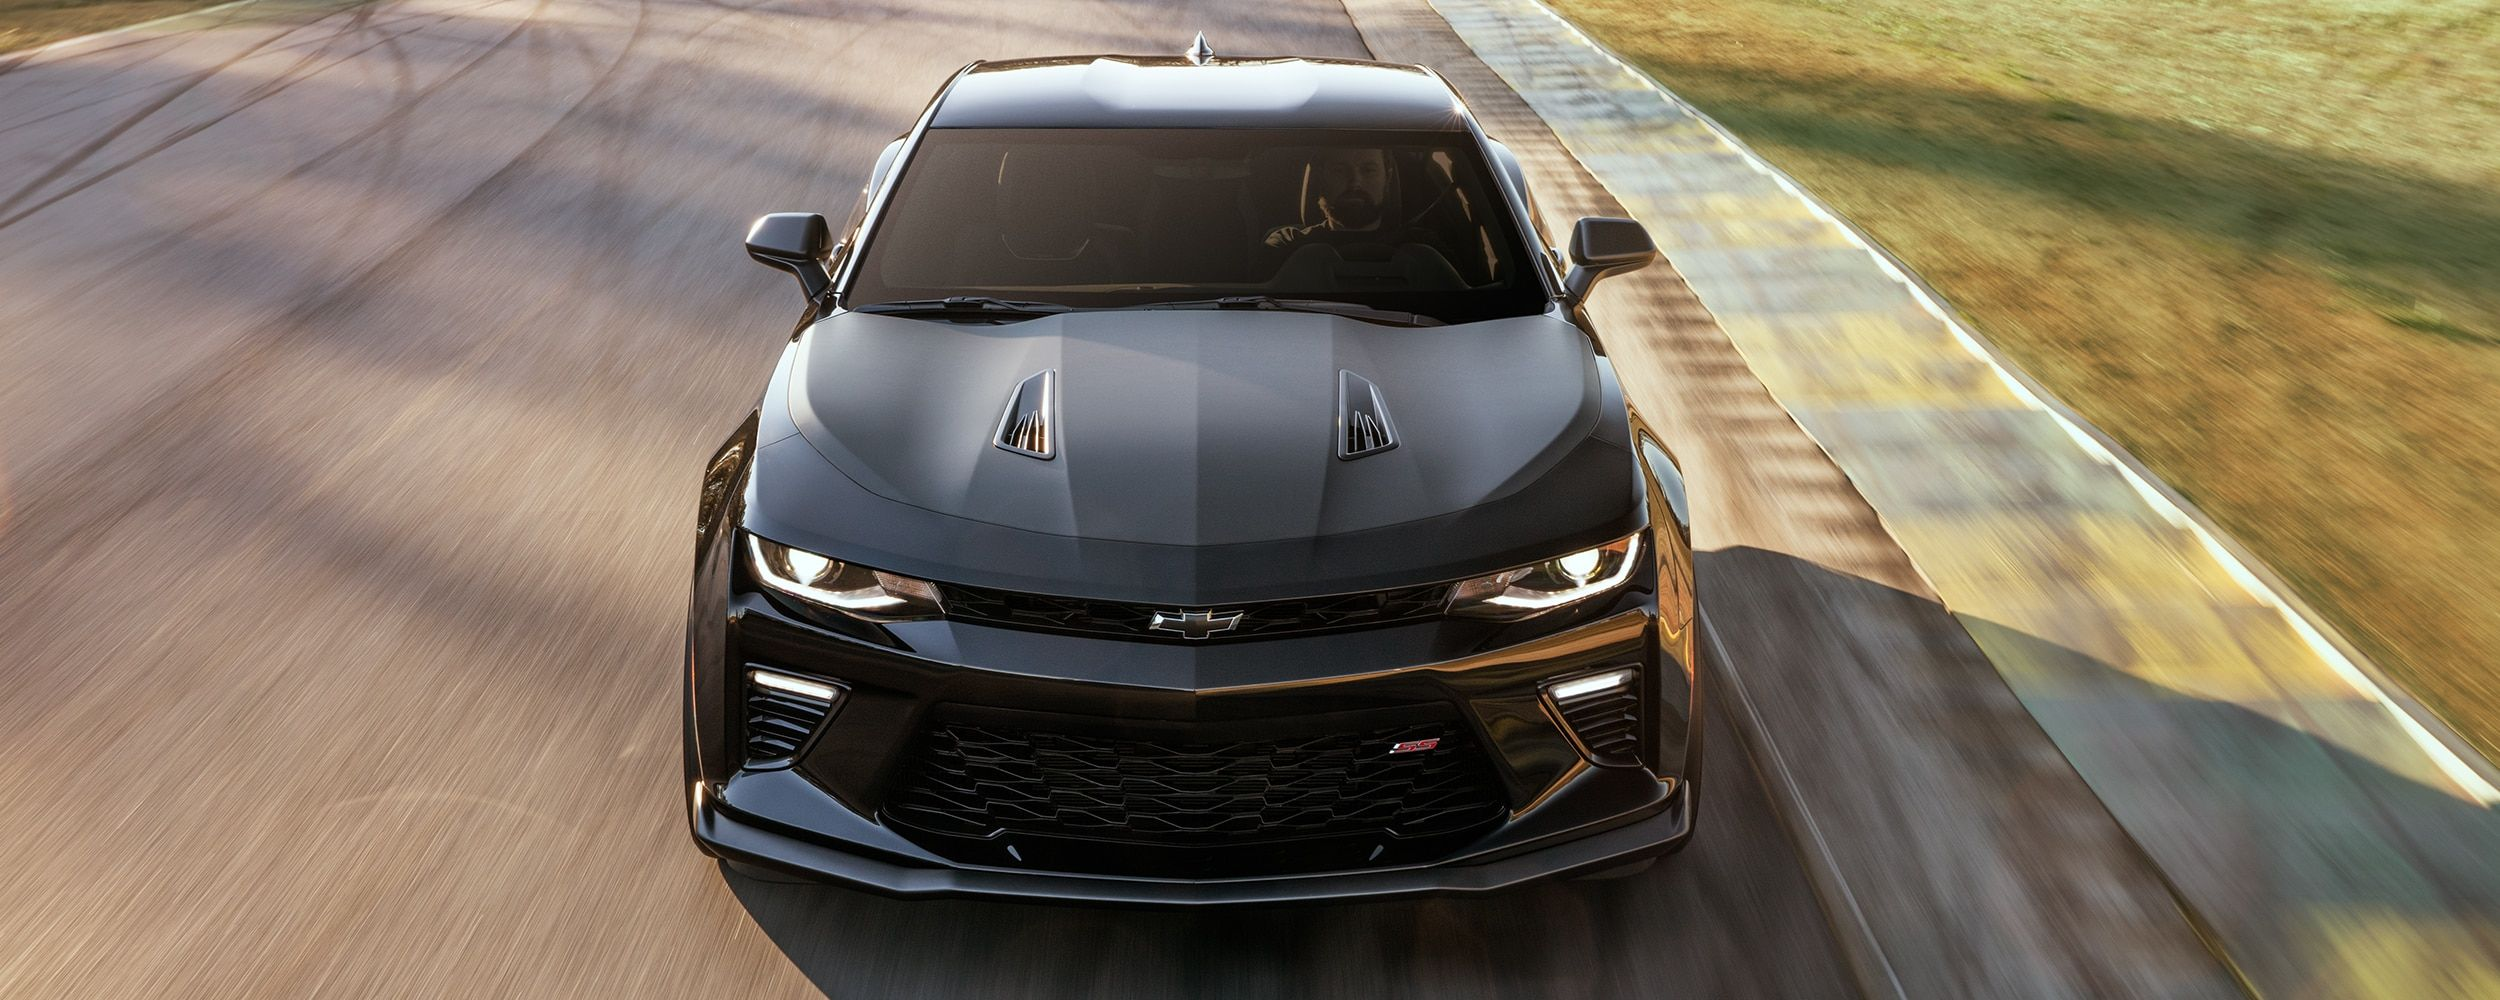 2018 Camaro Wallpapers Top Free 2018 Camaro Backgrounds